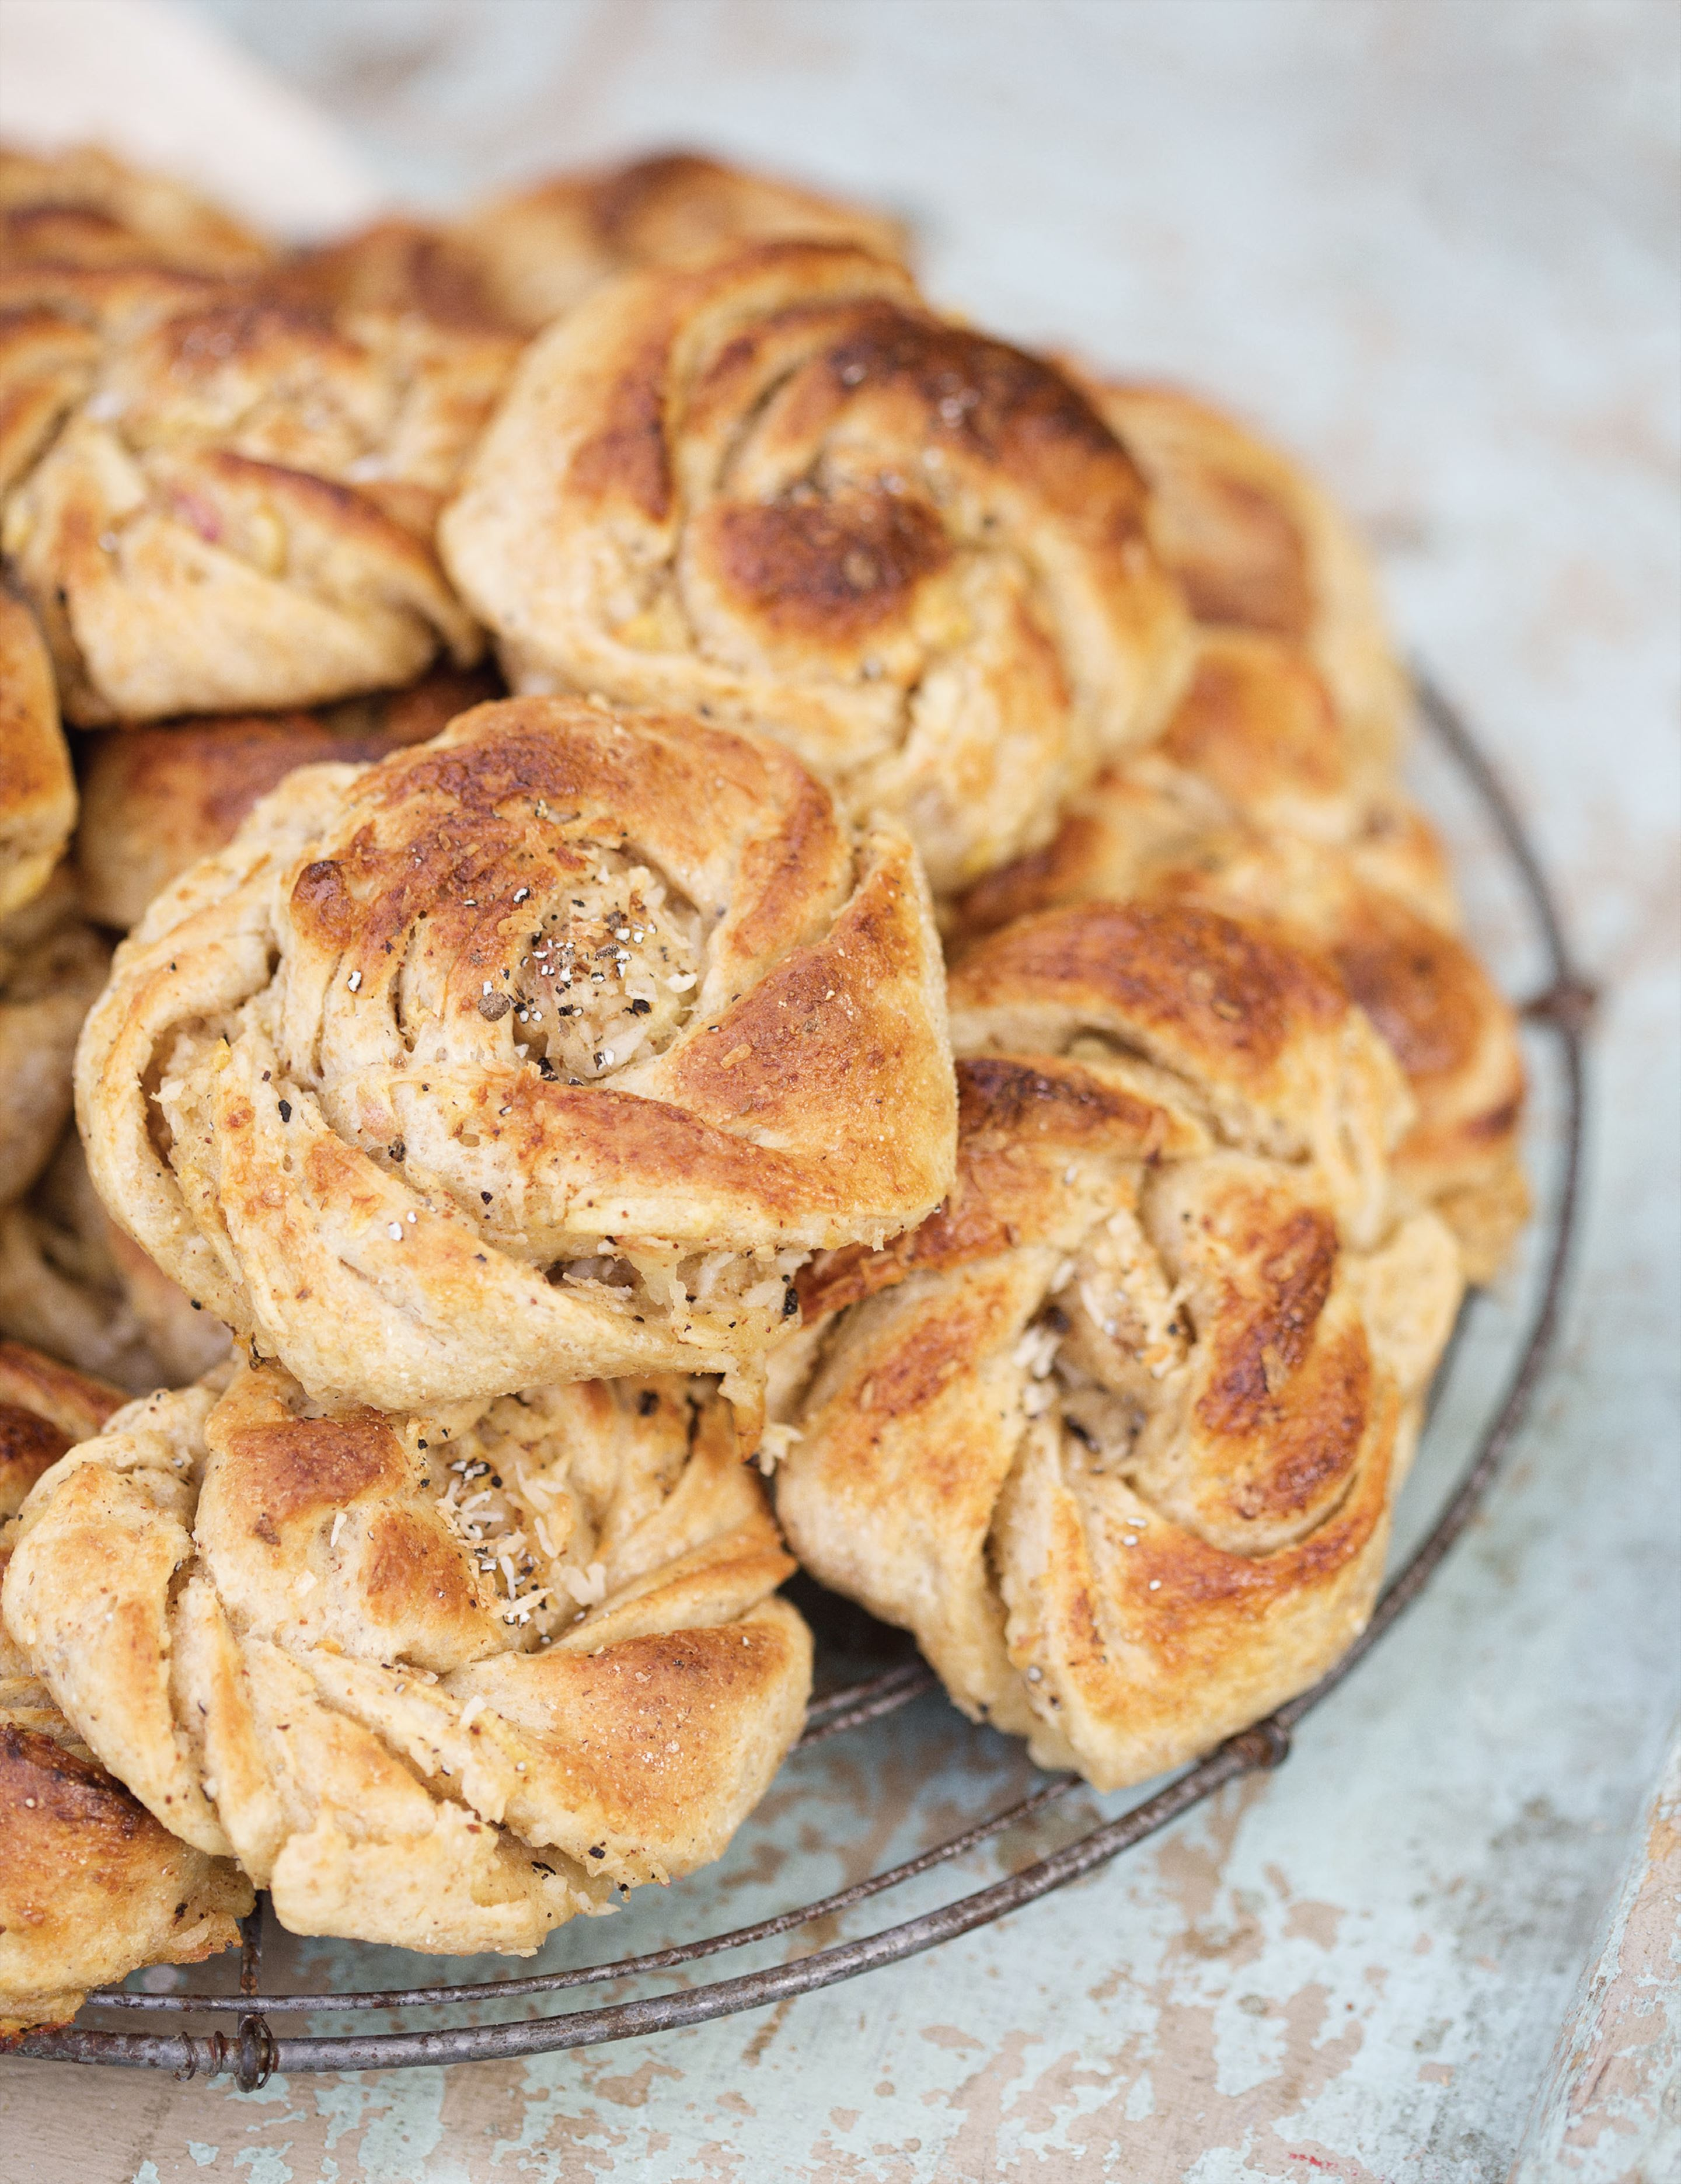 Cardamom and apple buns